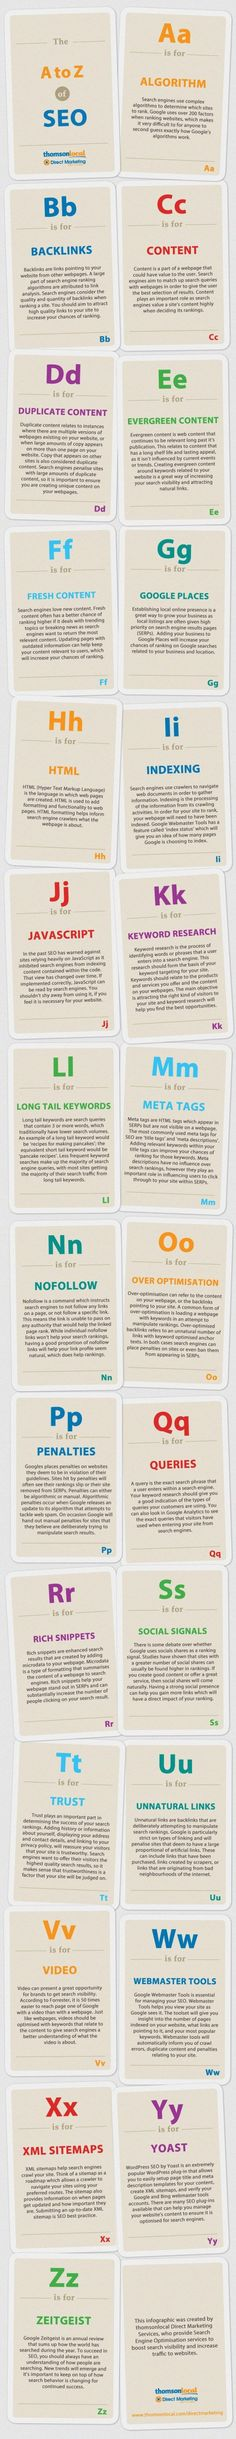 The A to Z of SEO!